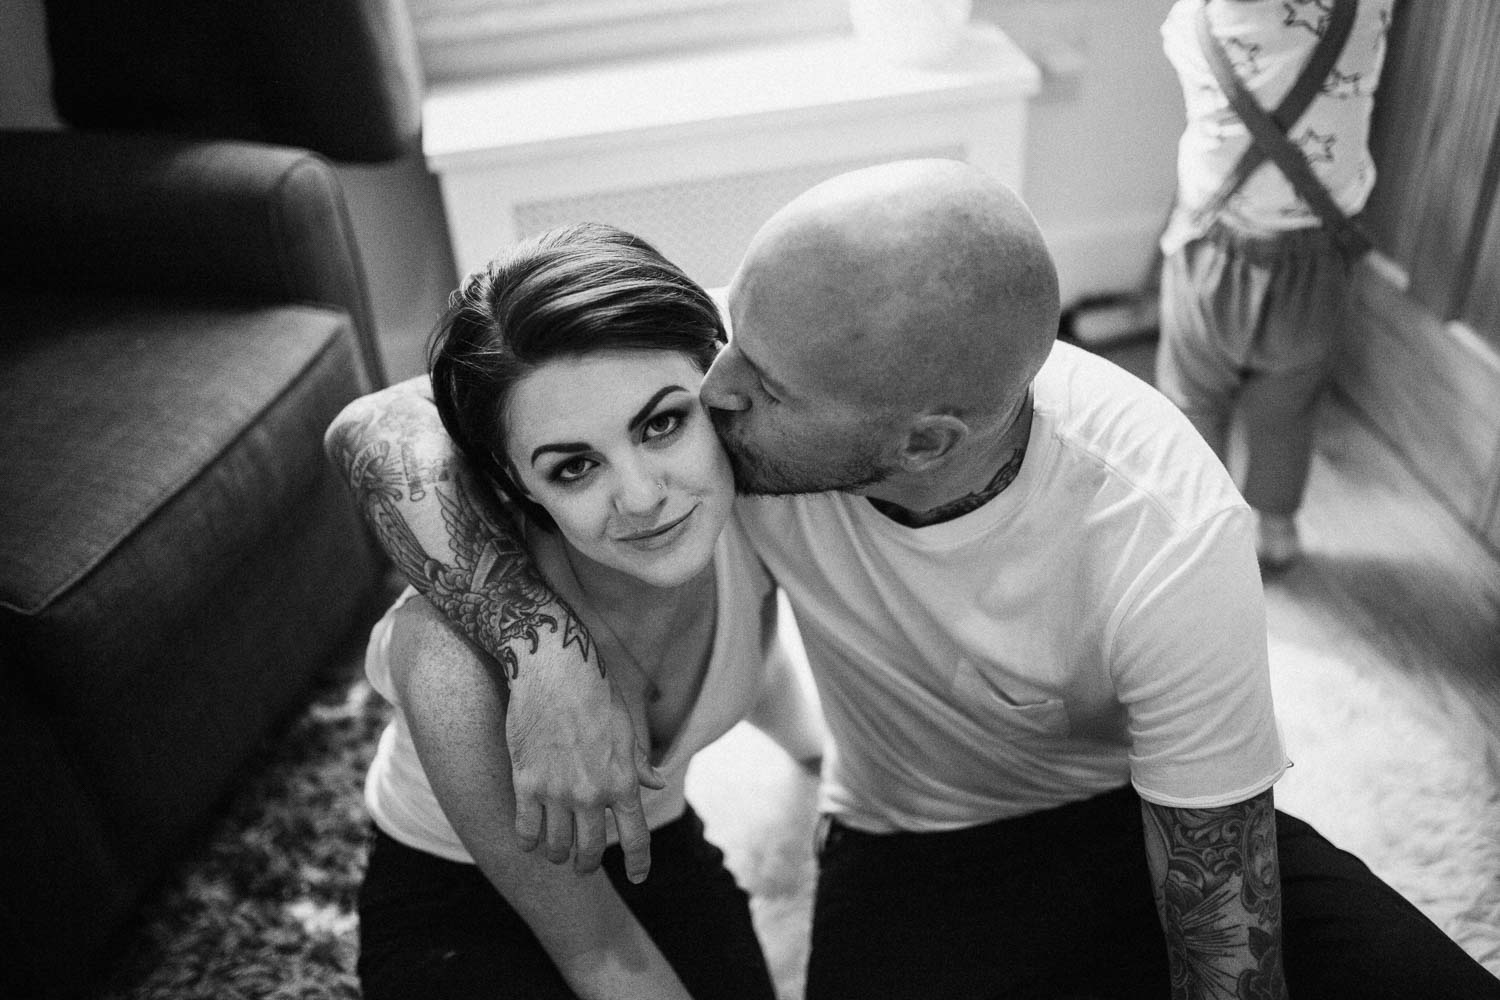 natural-and-bright-black-and-white-loving-intimate-moment-husband-kissing-wife-slc-utah